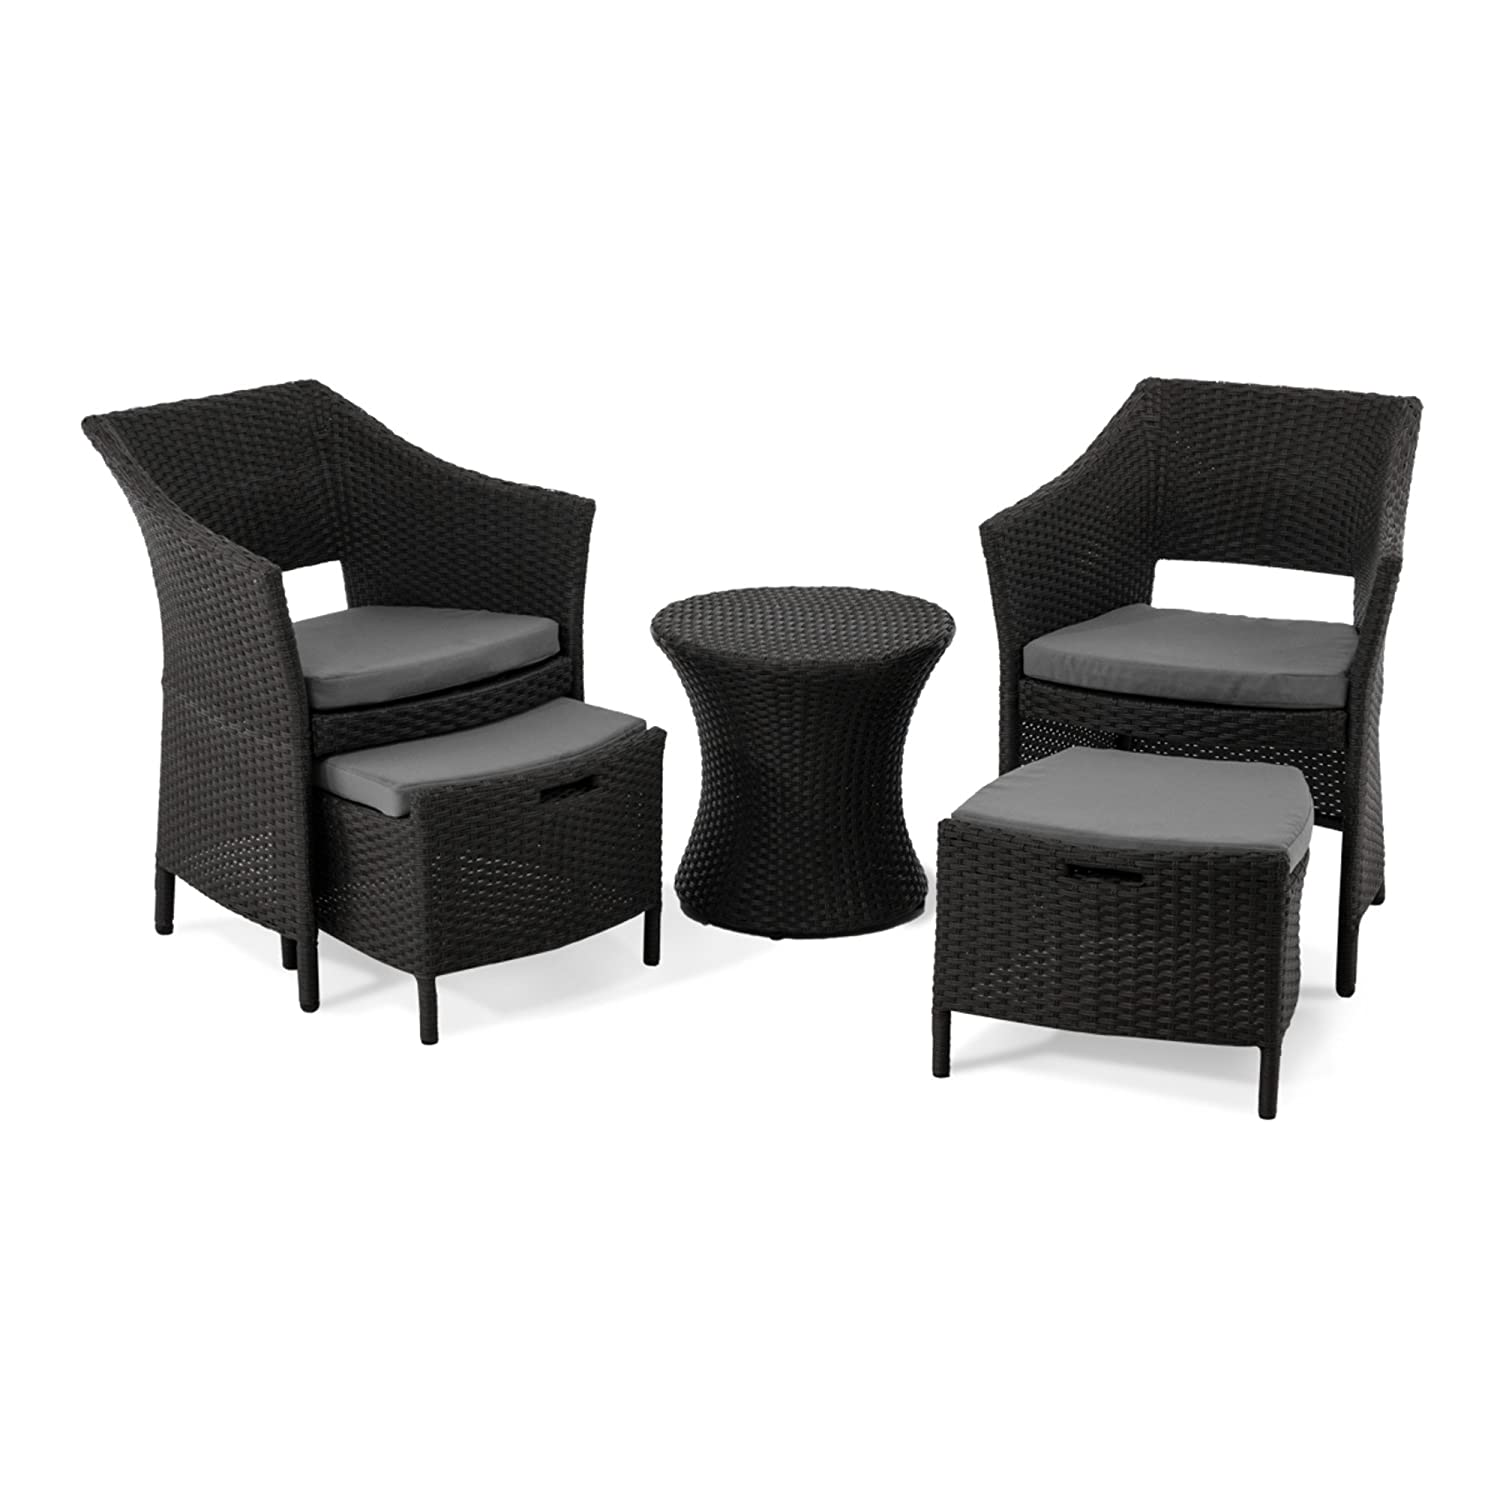 gartenm bel set 5 tlg mit sitzauflagen kunstrattan ca b63 x t64 x h80 cm g nstig online kaufen. Black Bedroom Furniture Sets. Home Design Ideas